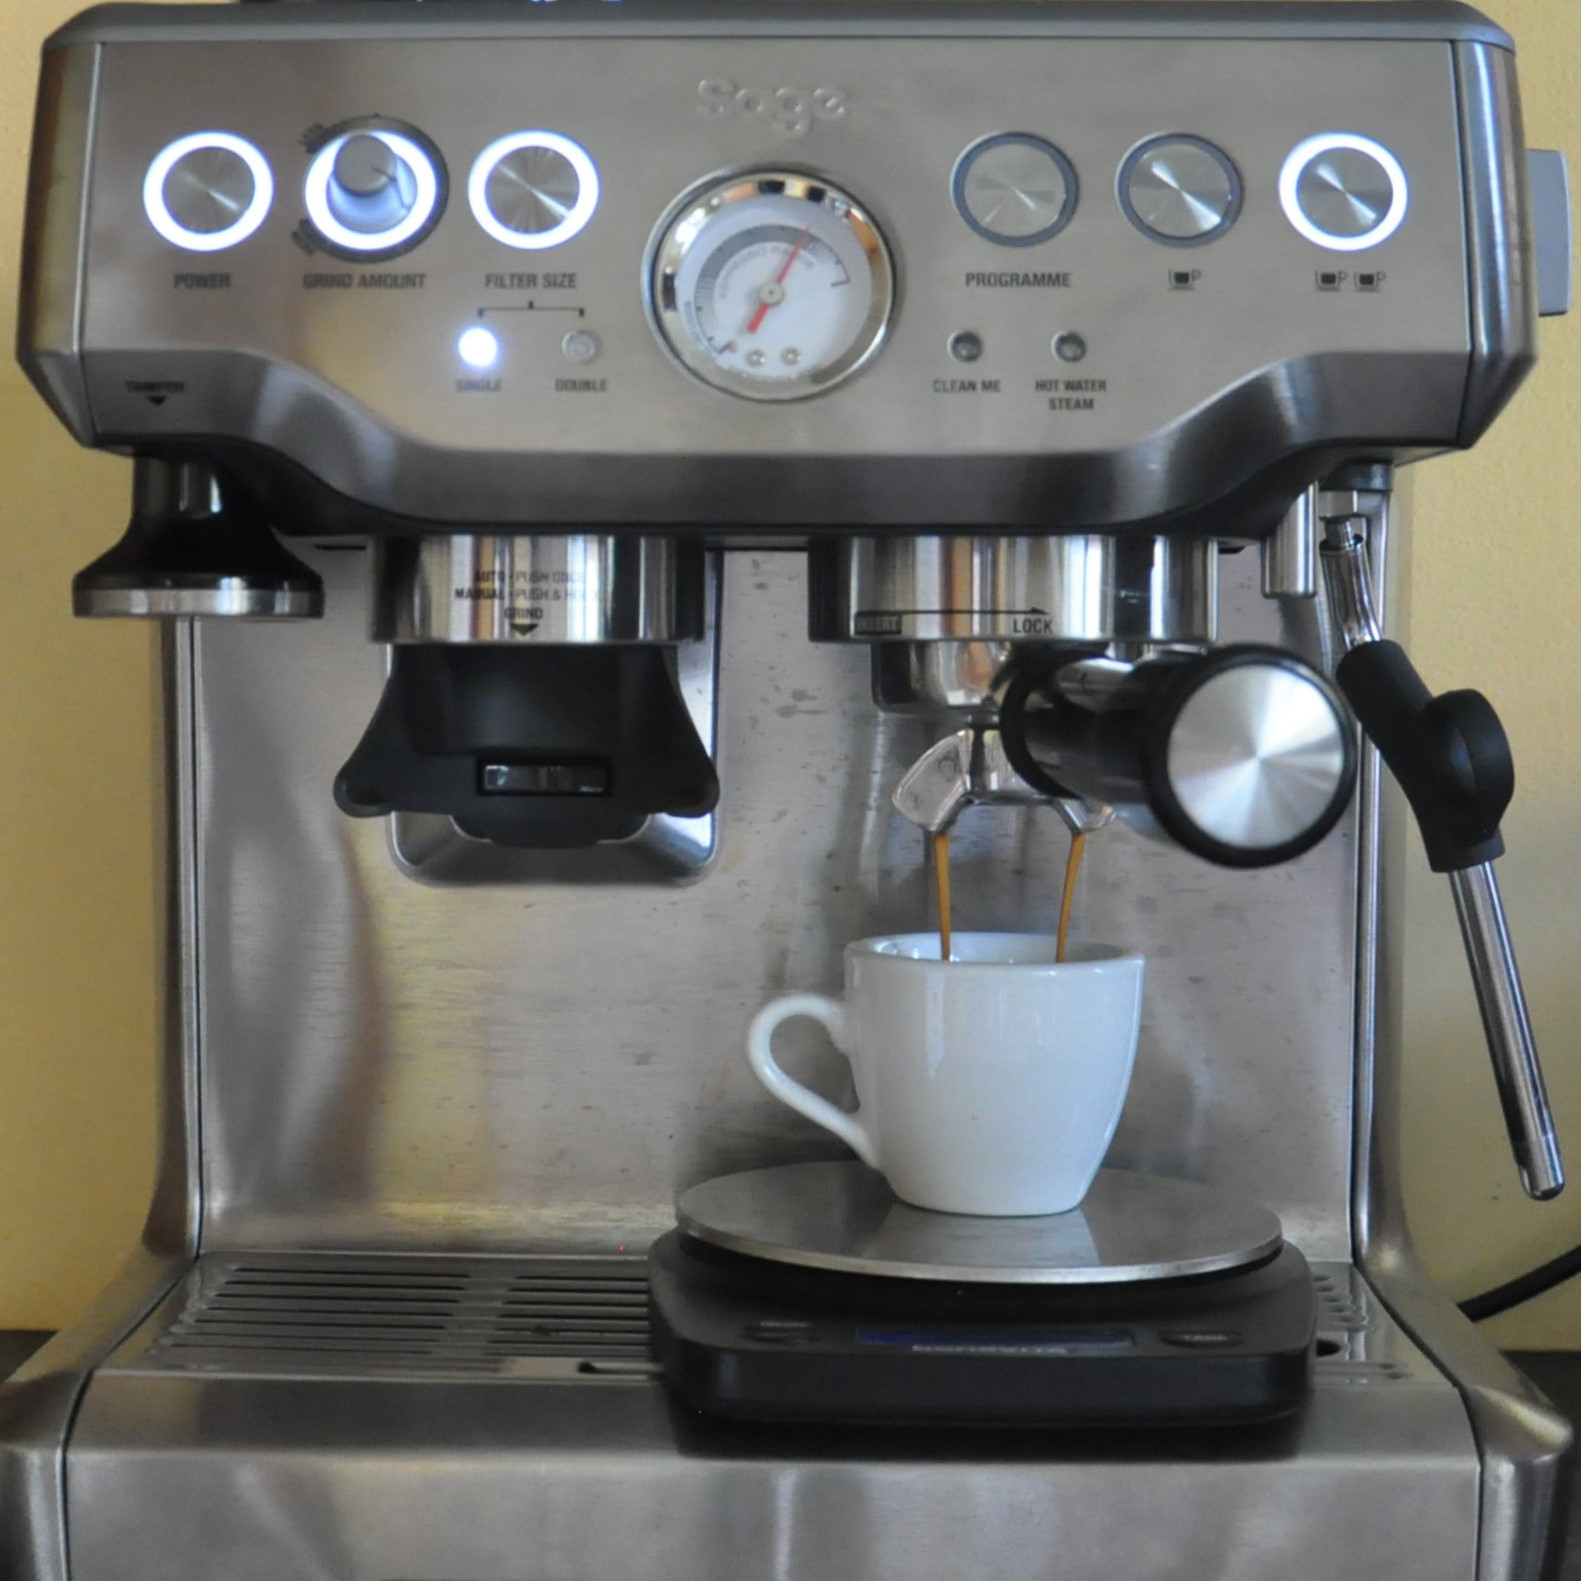 My Sage Barista Express in action, making an espresso with the Coffee Spot cup.